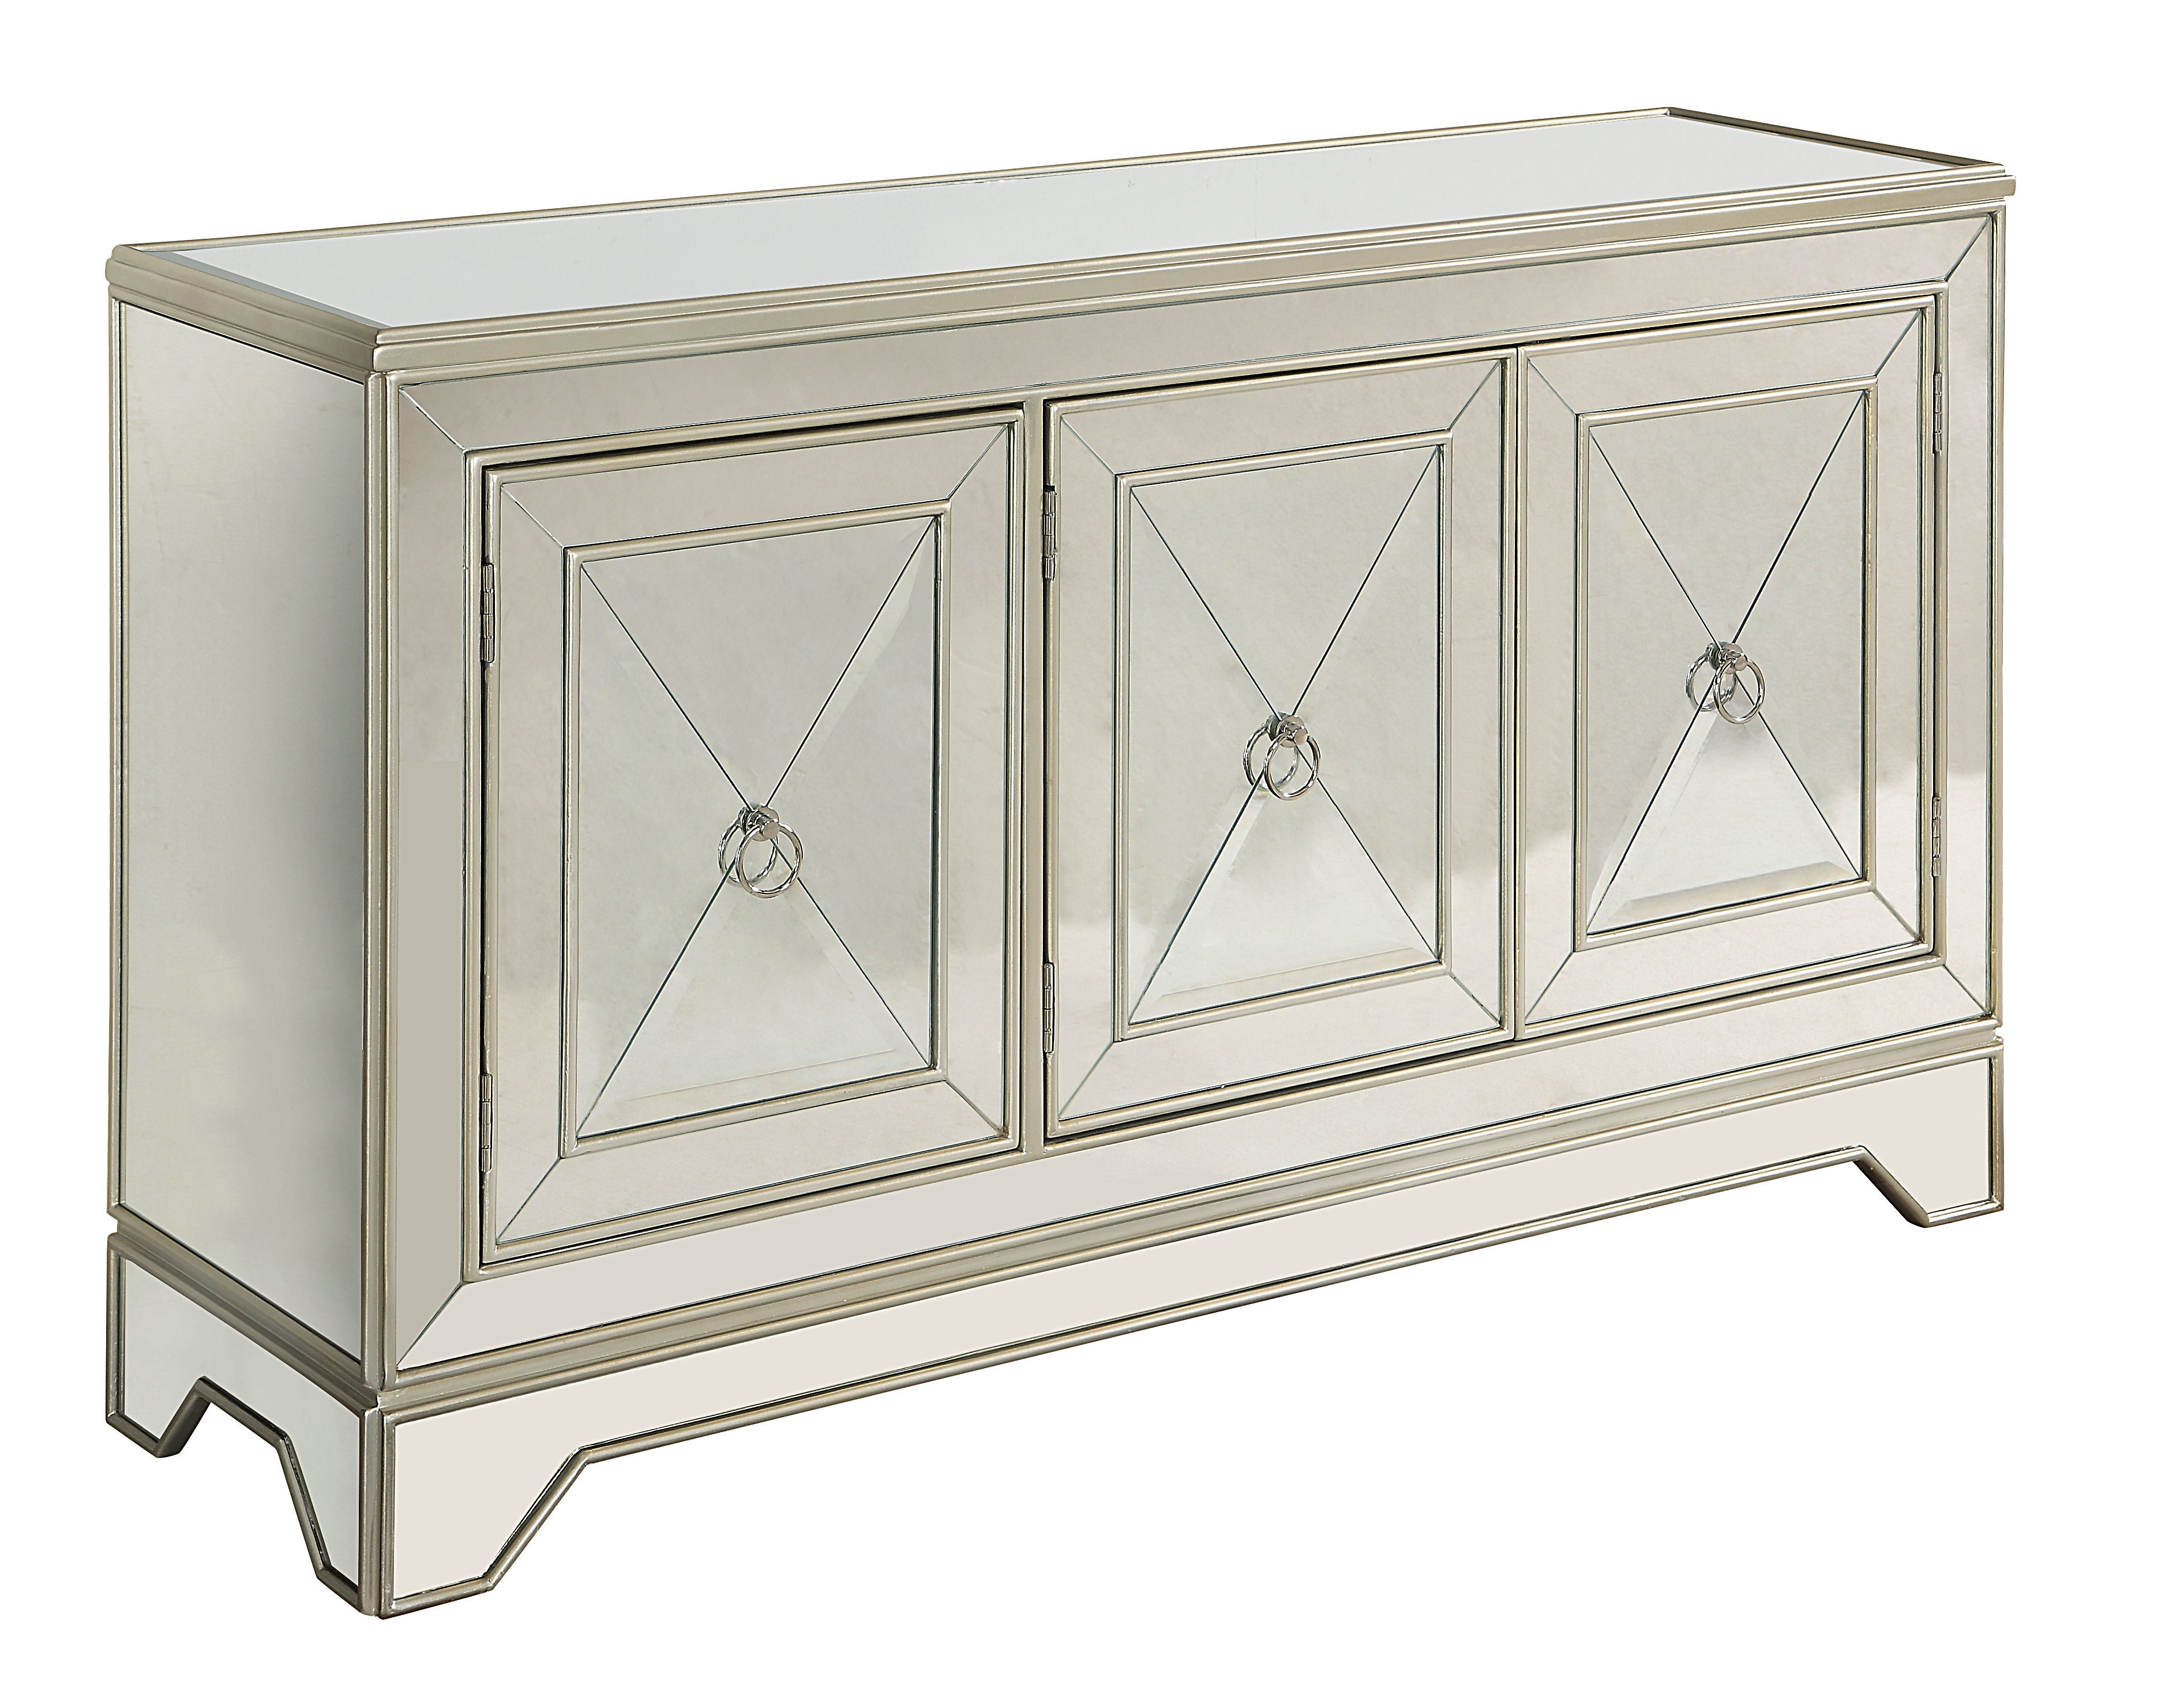 Keeney Sideboard With Regard To Tott And Eling Sideboards (Gallery 6 of 20)